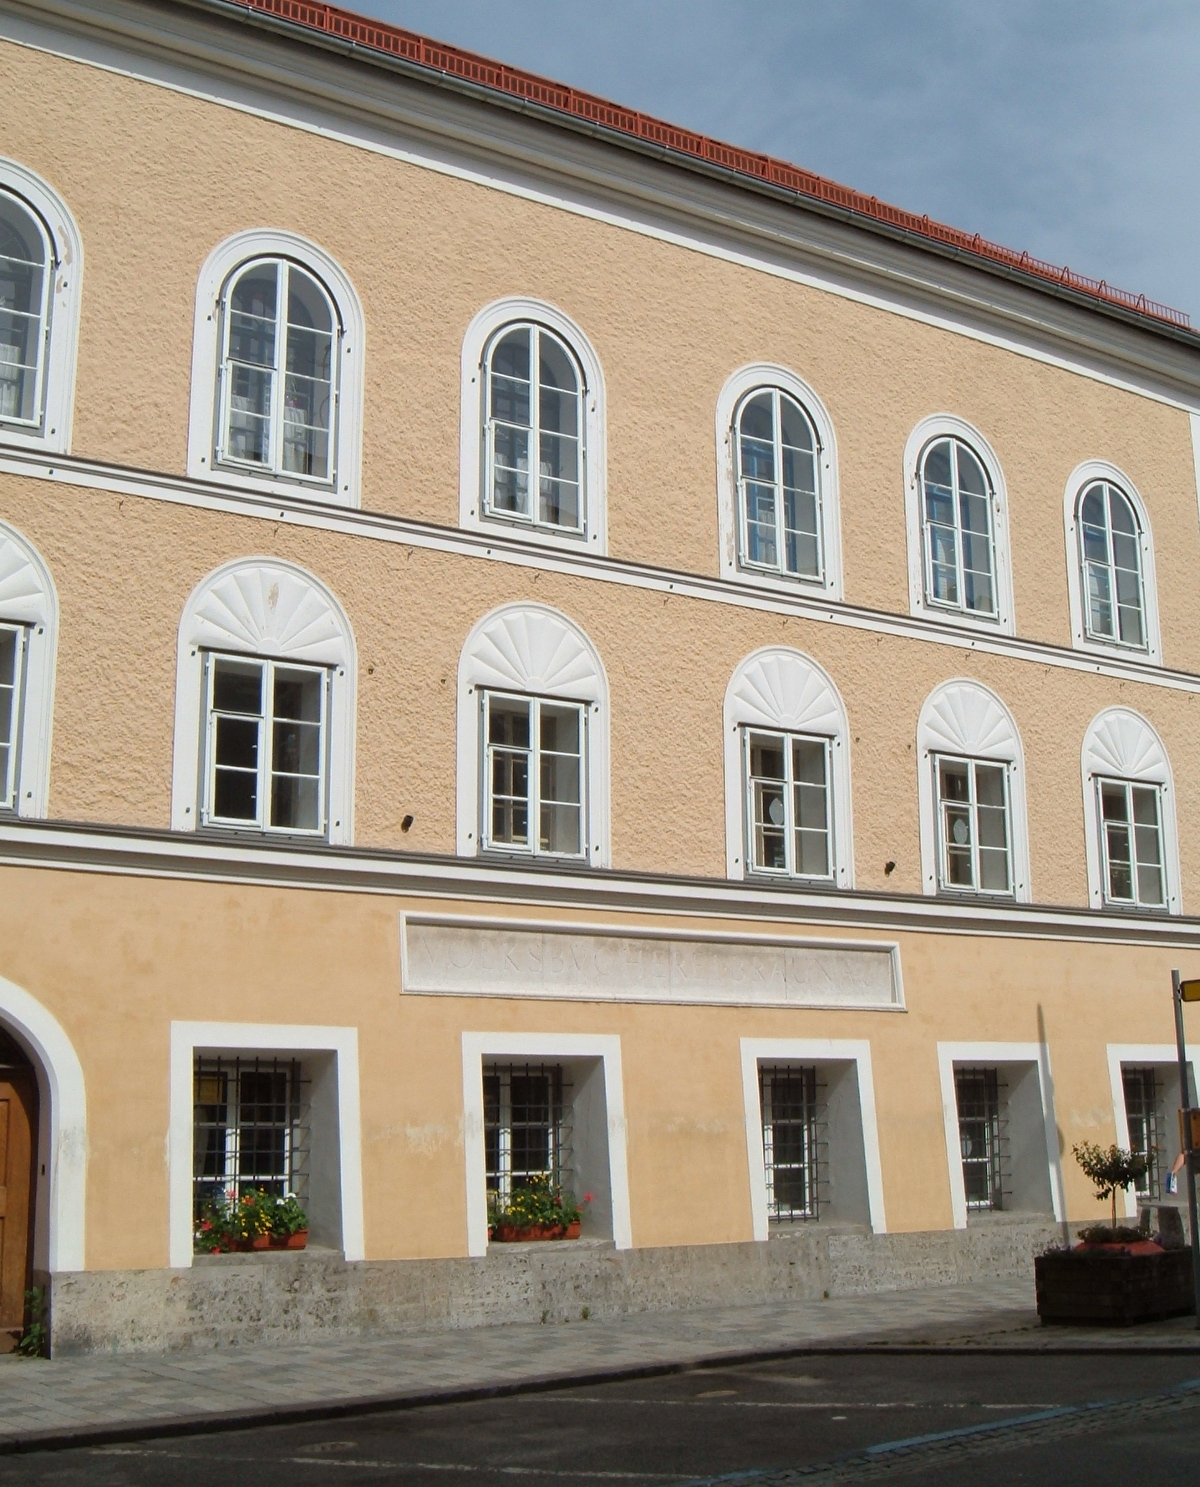 The facade of the house in which Hitler was born, Braunau am Inn, Upper Austria.